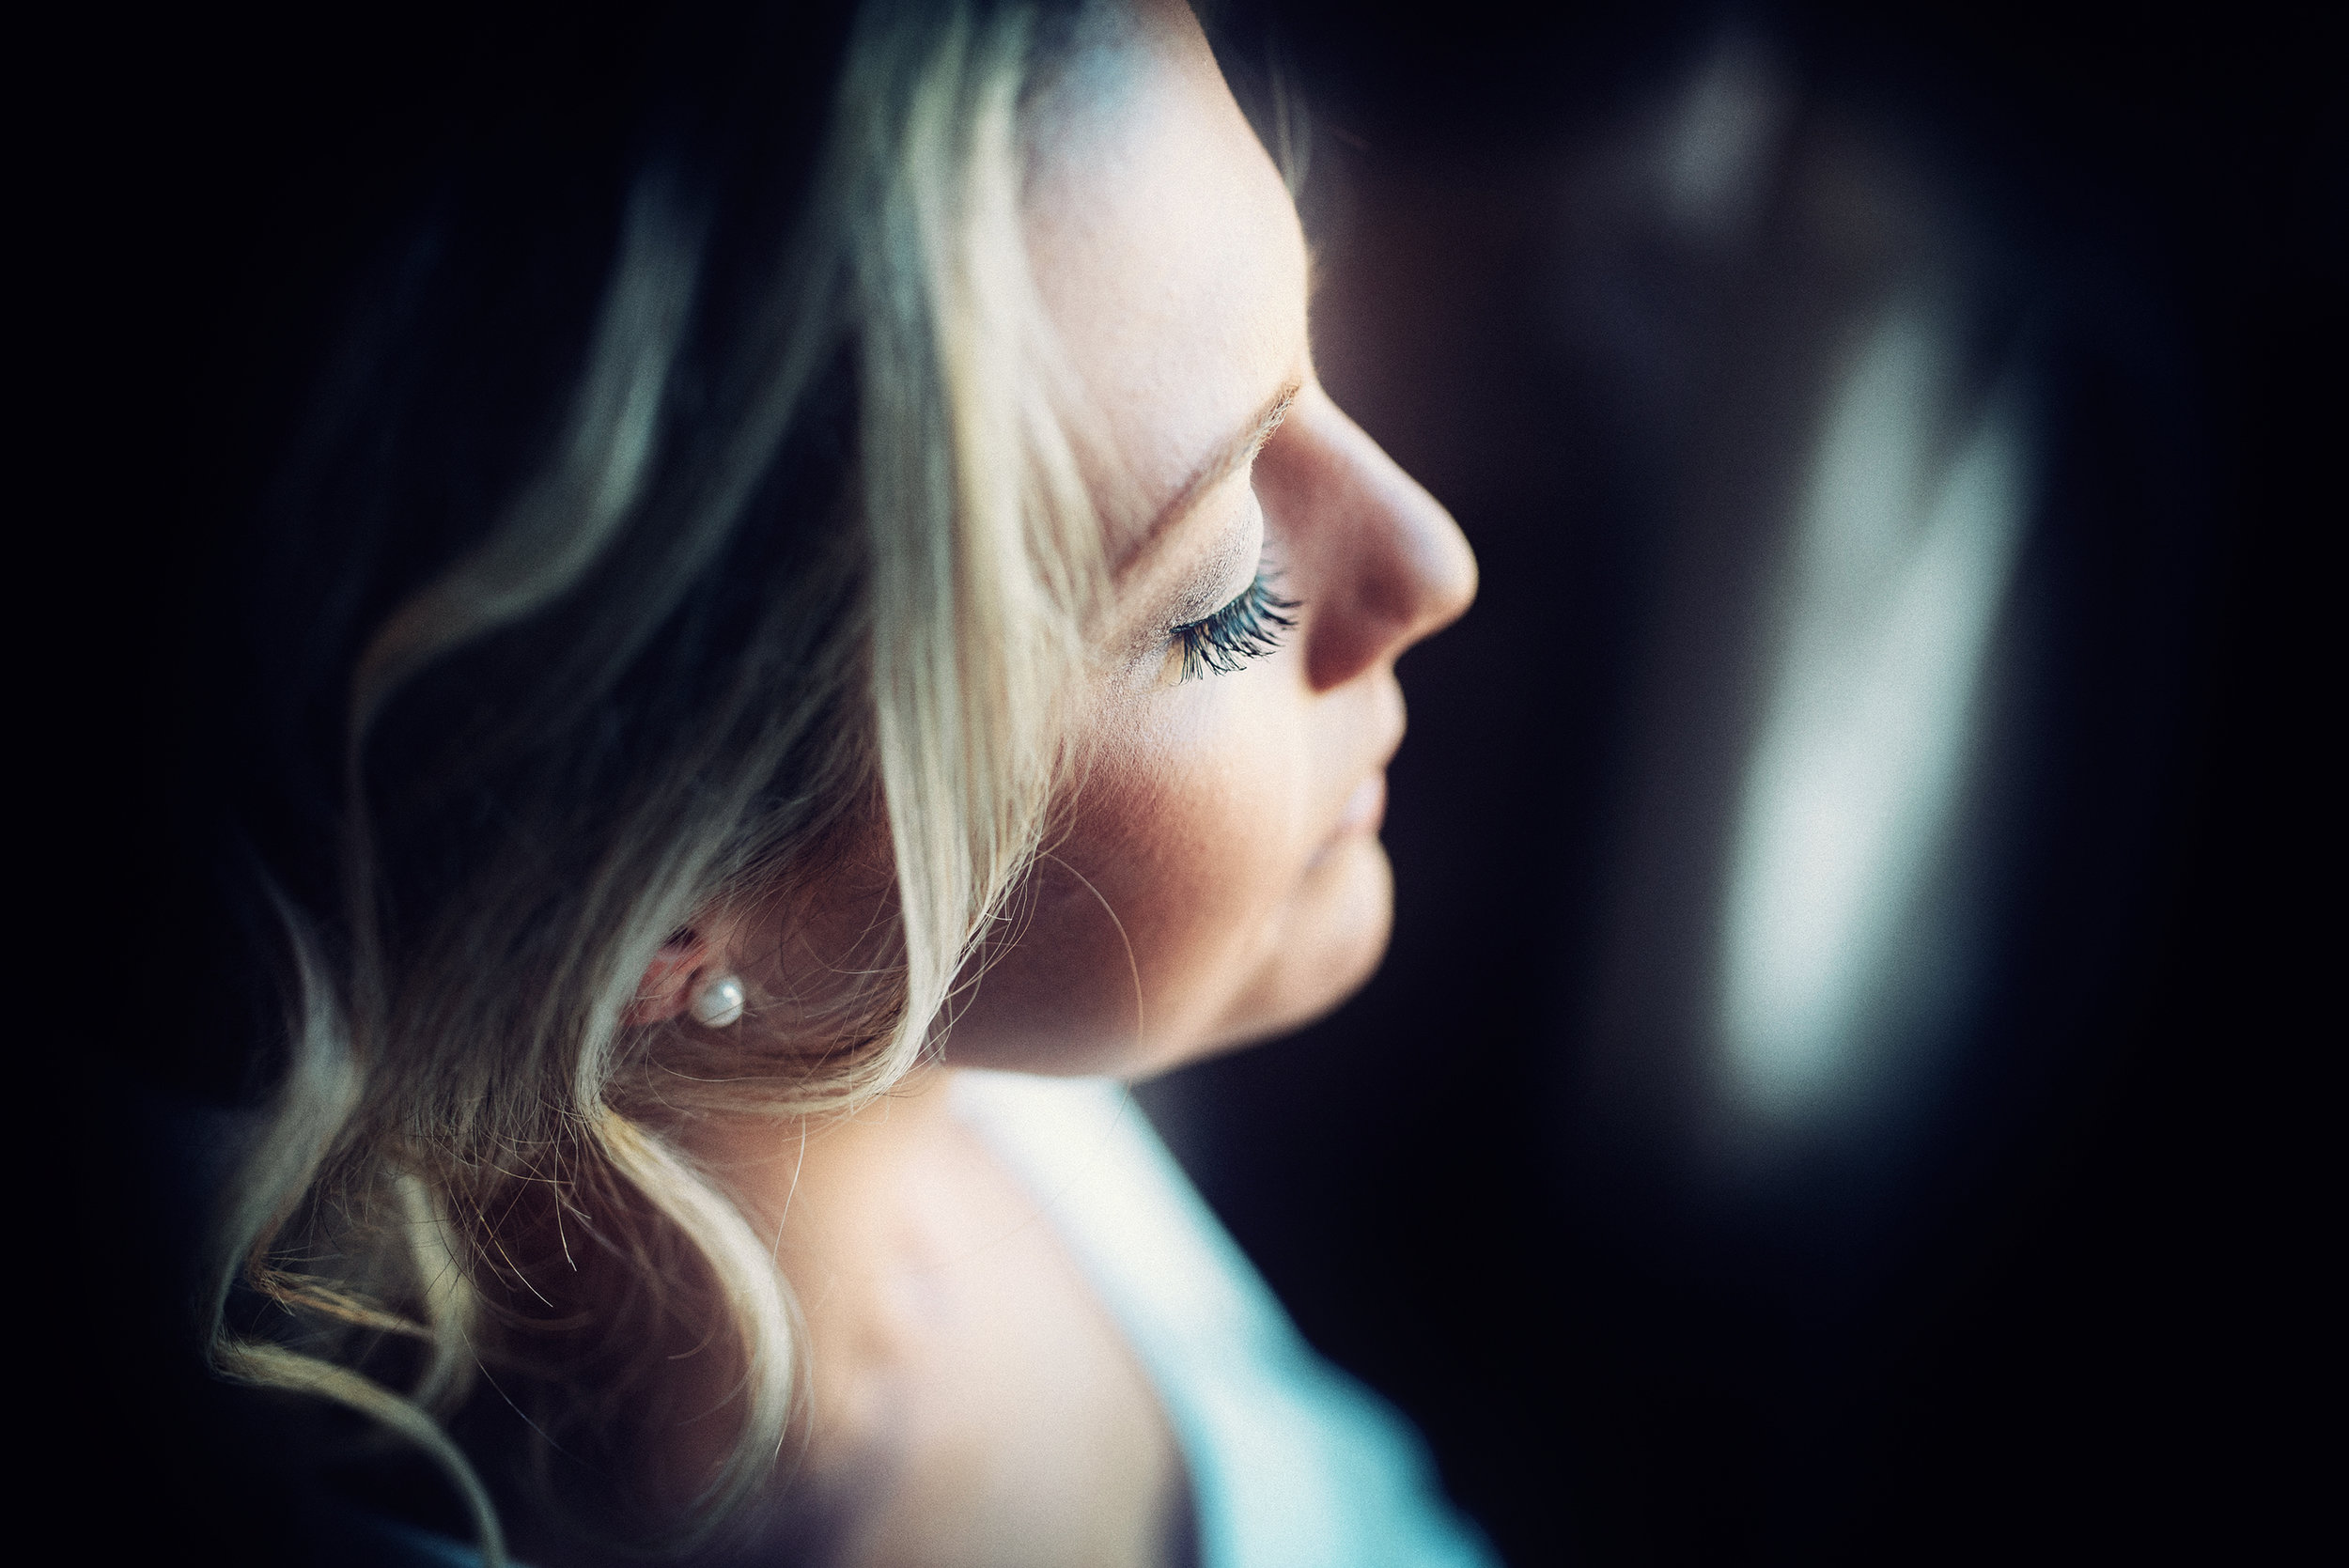 A bridesmaid in subdued light during bridal preparations